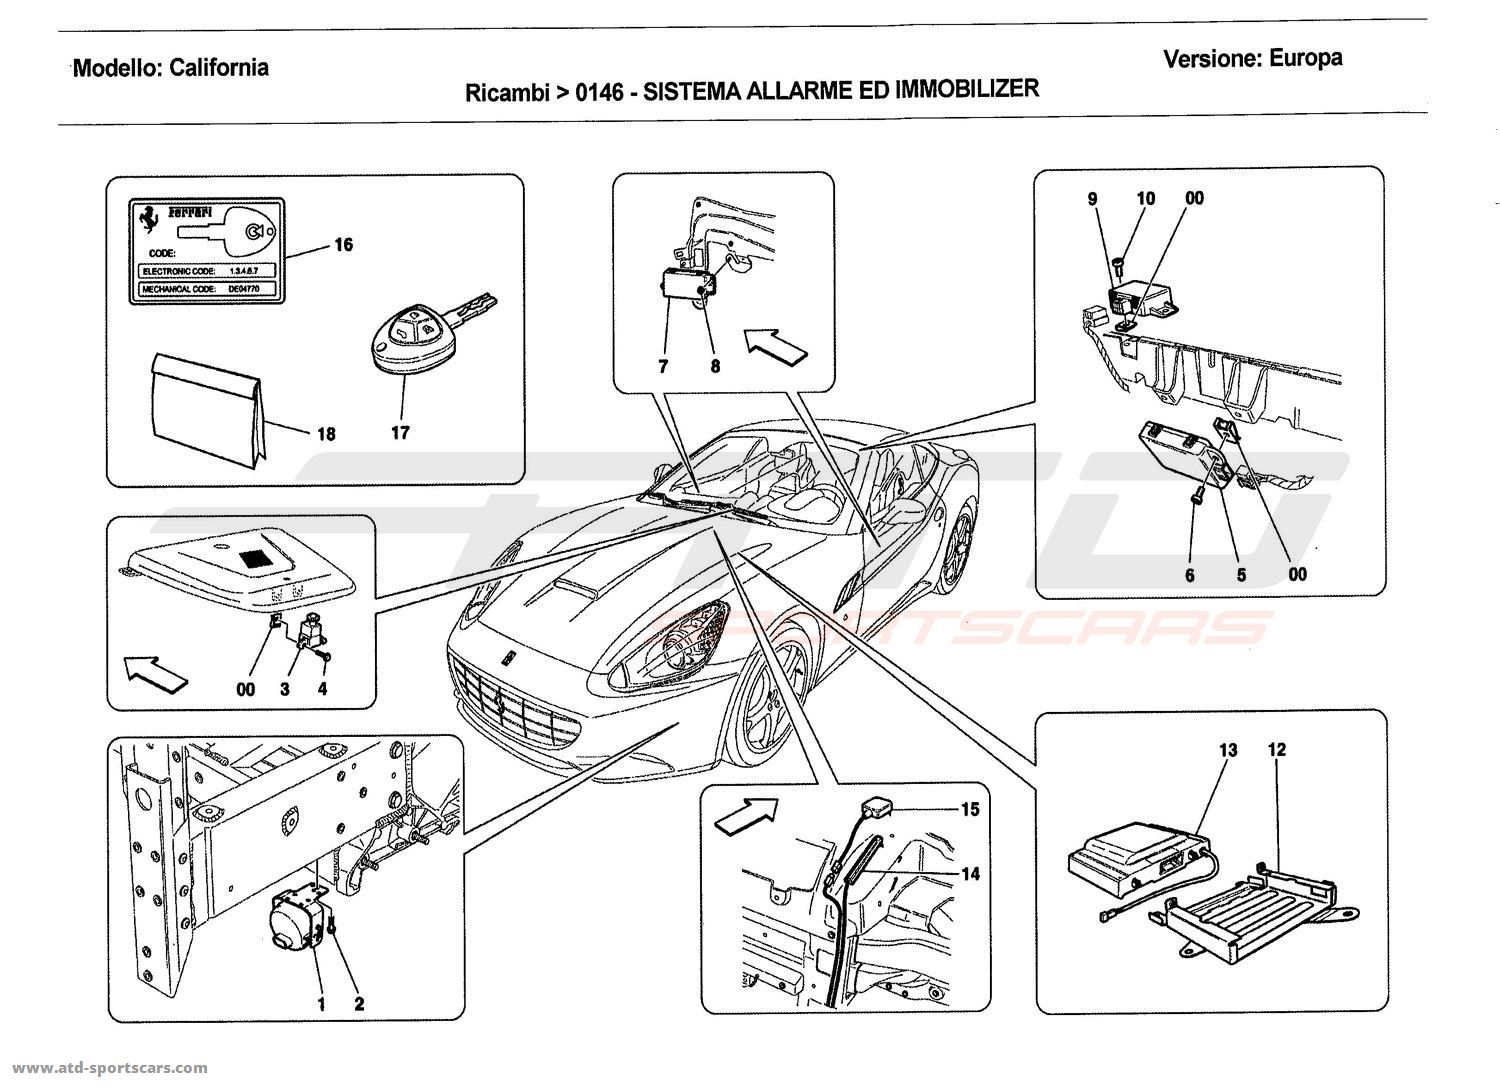 ALARM AND IMMOBILIZER SYSTEM